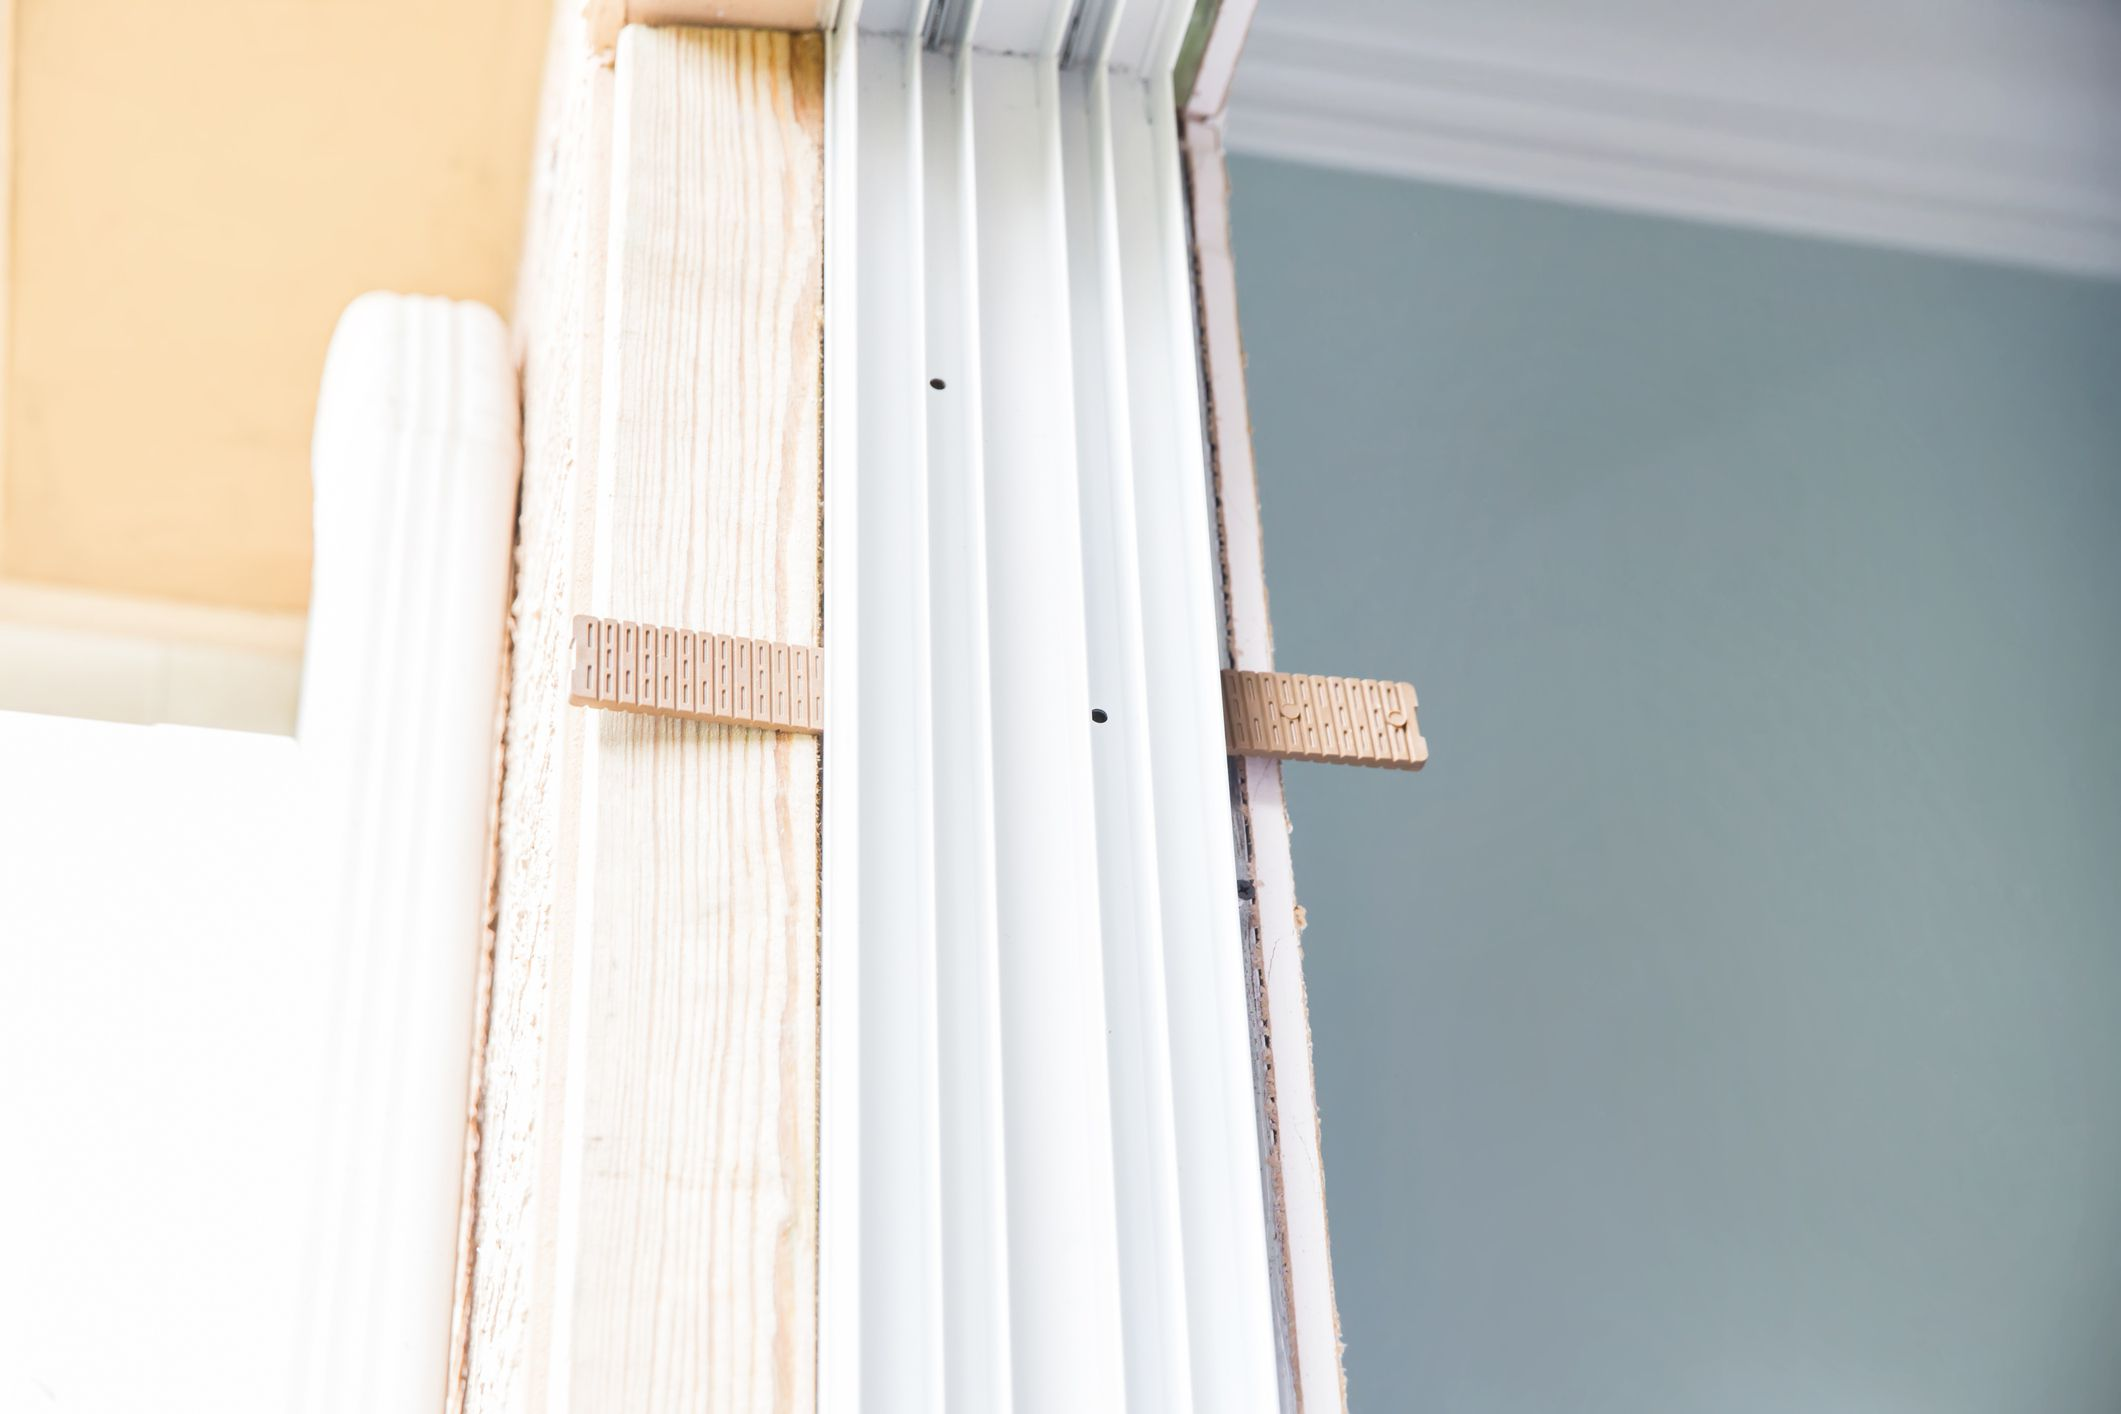 How to Use Wood or Plastic Shims